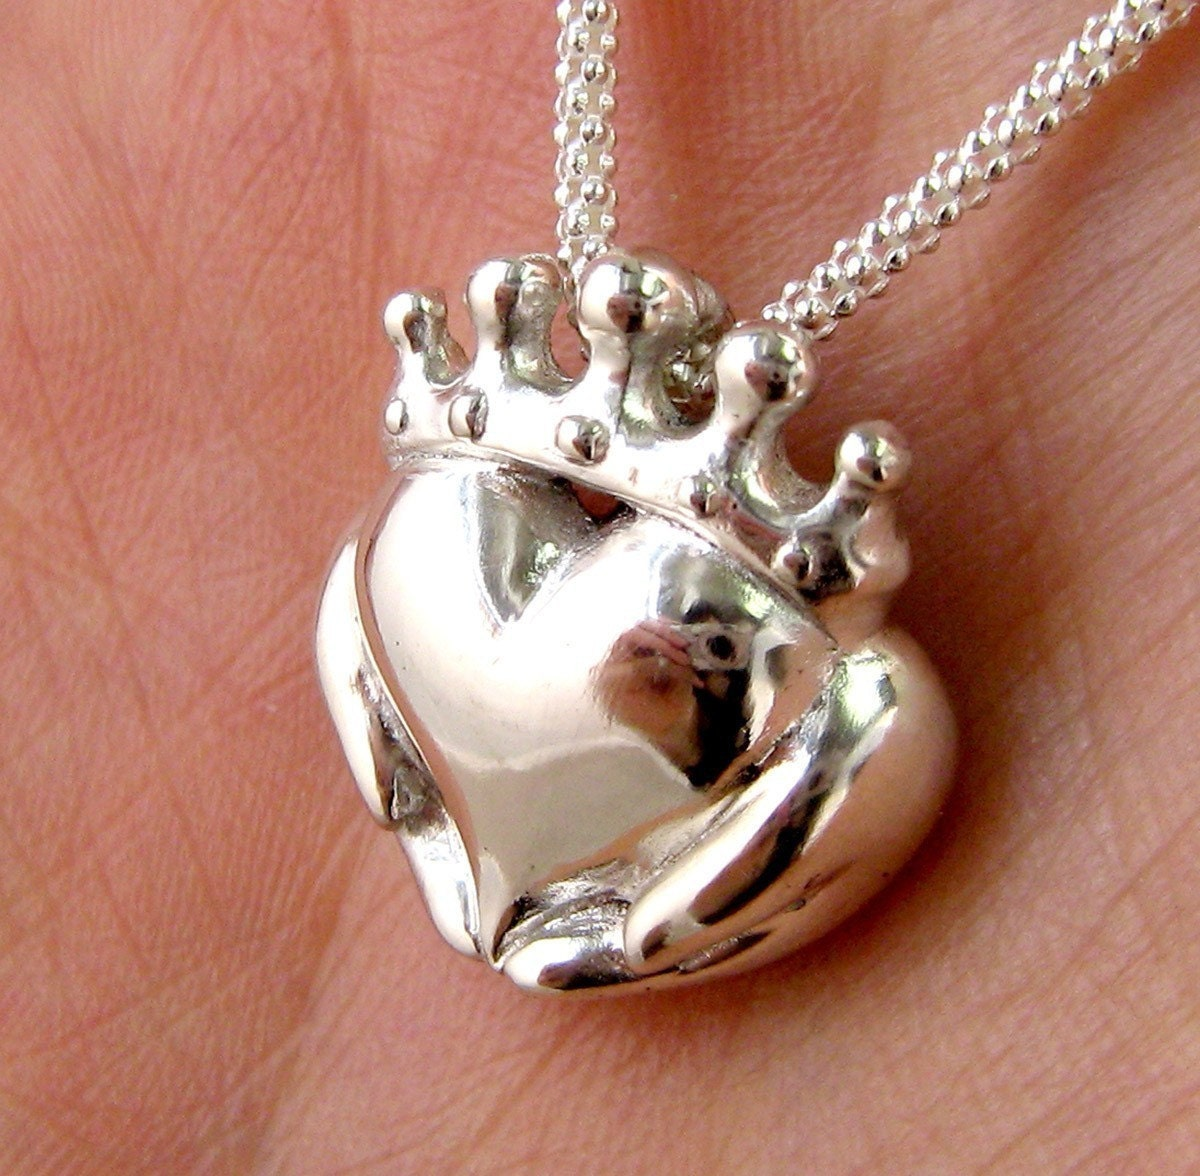 Homemade Celtic Gifts: Handmade Claddagh Necklace